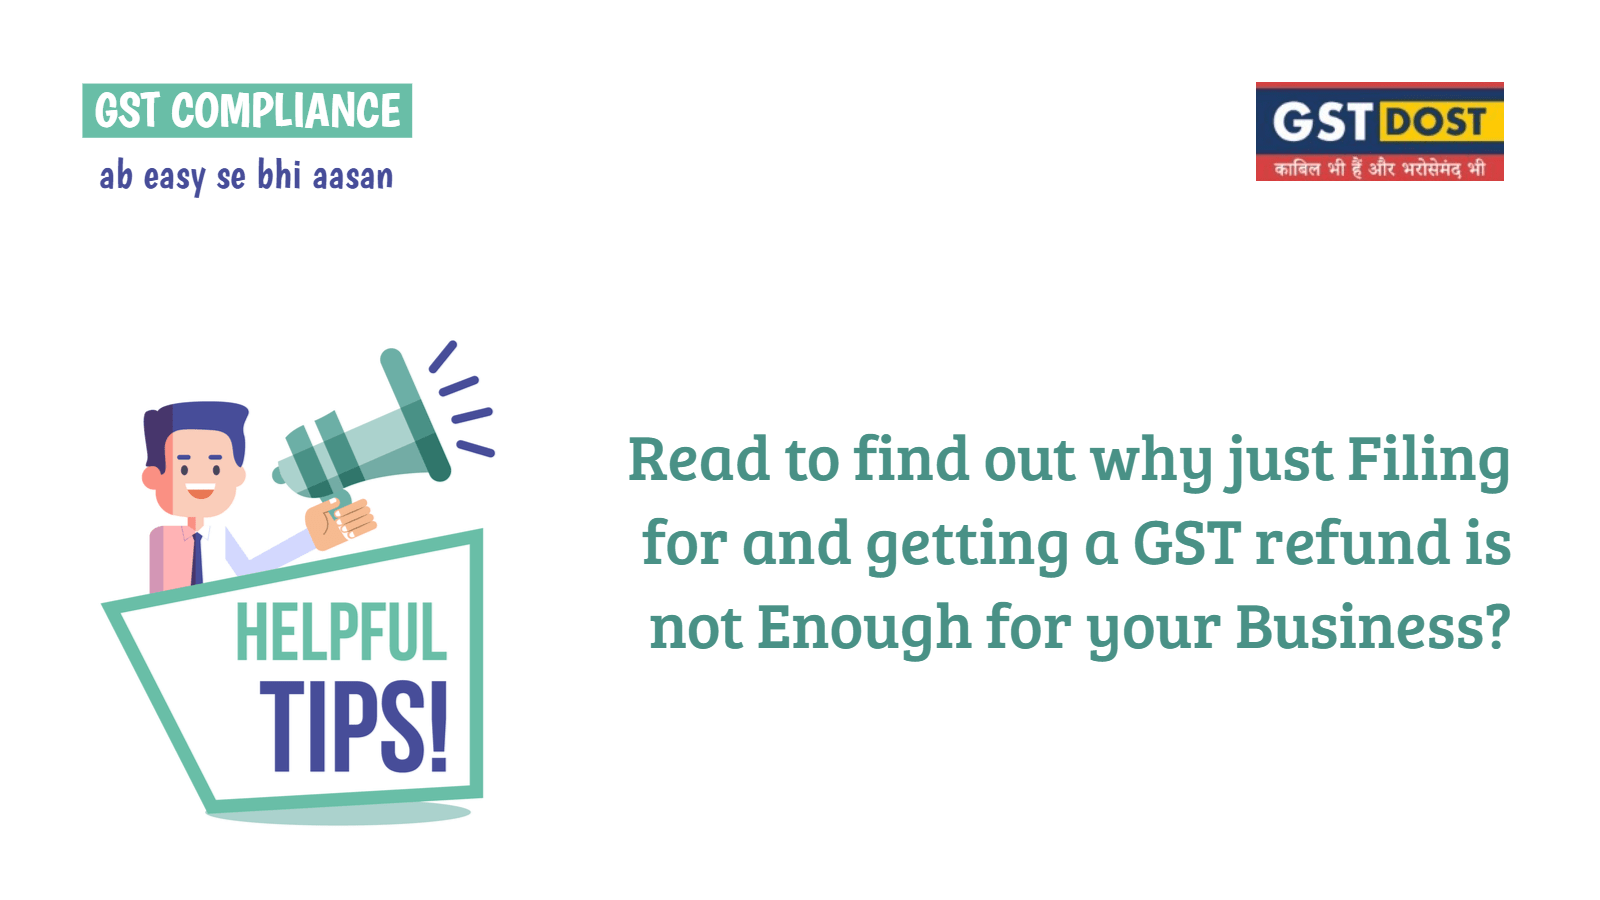 Read to find out why just Filing for and getting a GST refund is not Enough for your Business?